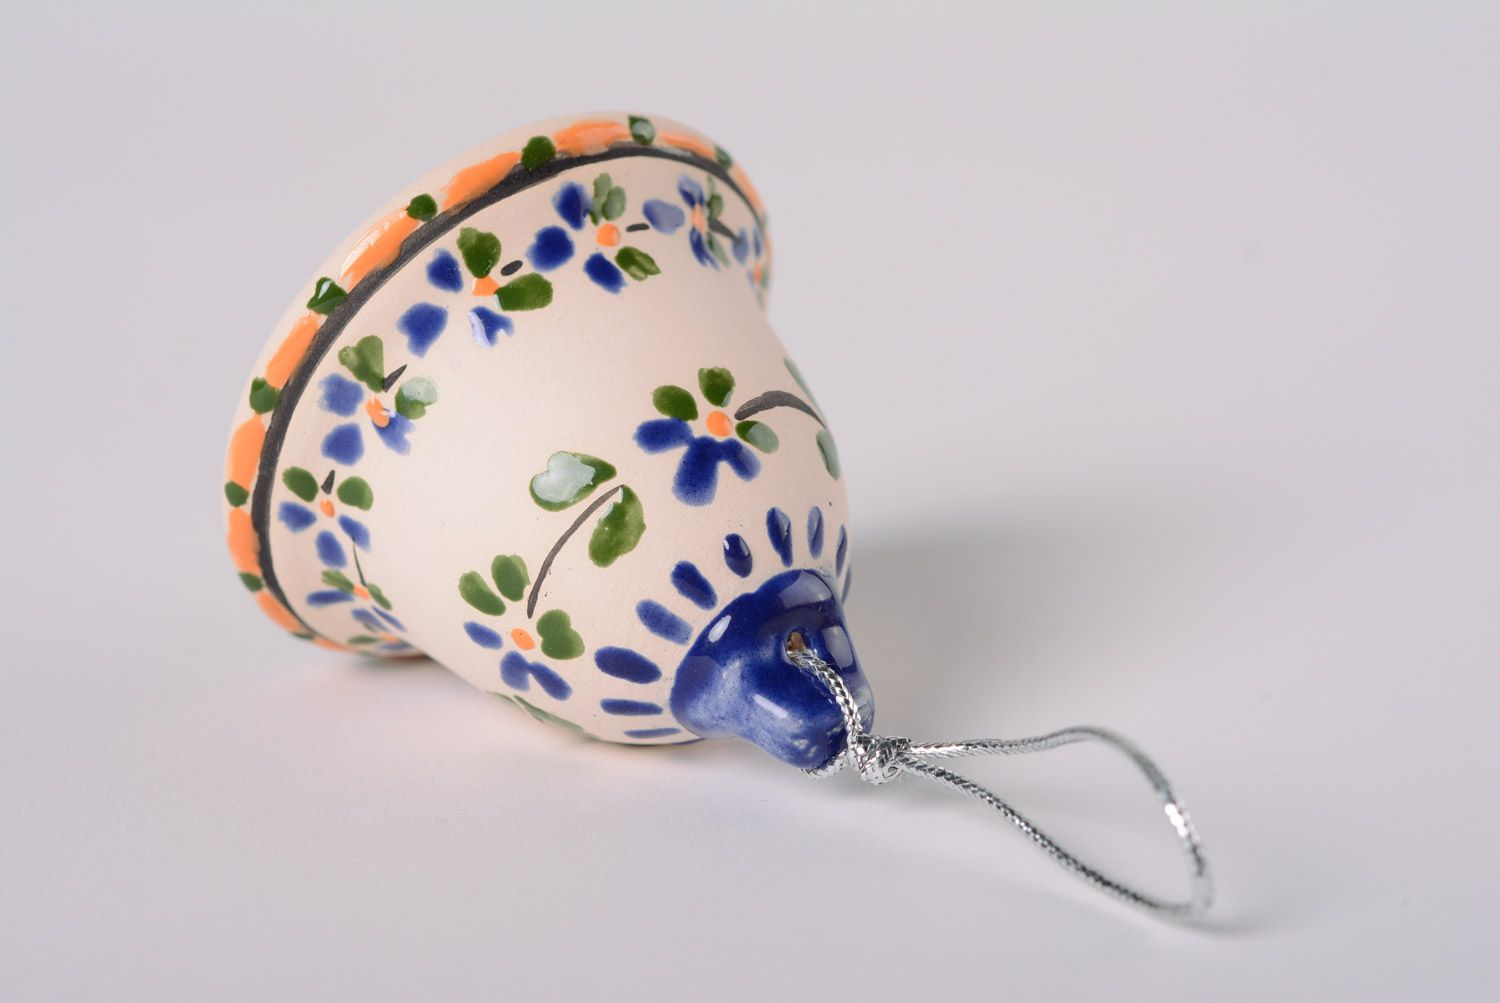 Handmade ceramic bell with painting majolica style with a loop interior decor ideas photo 5